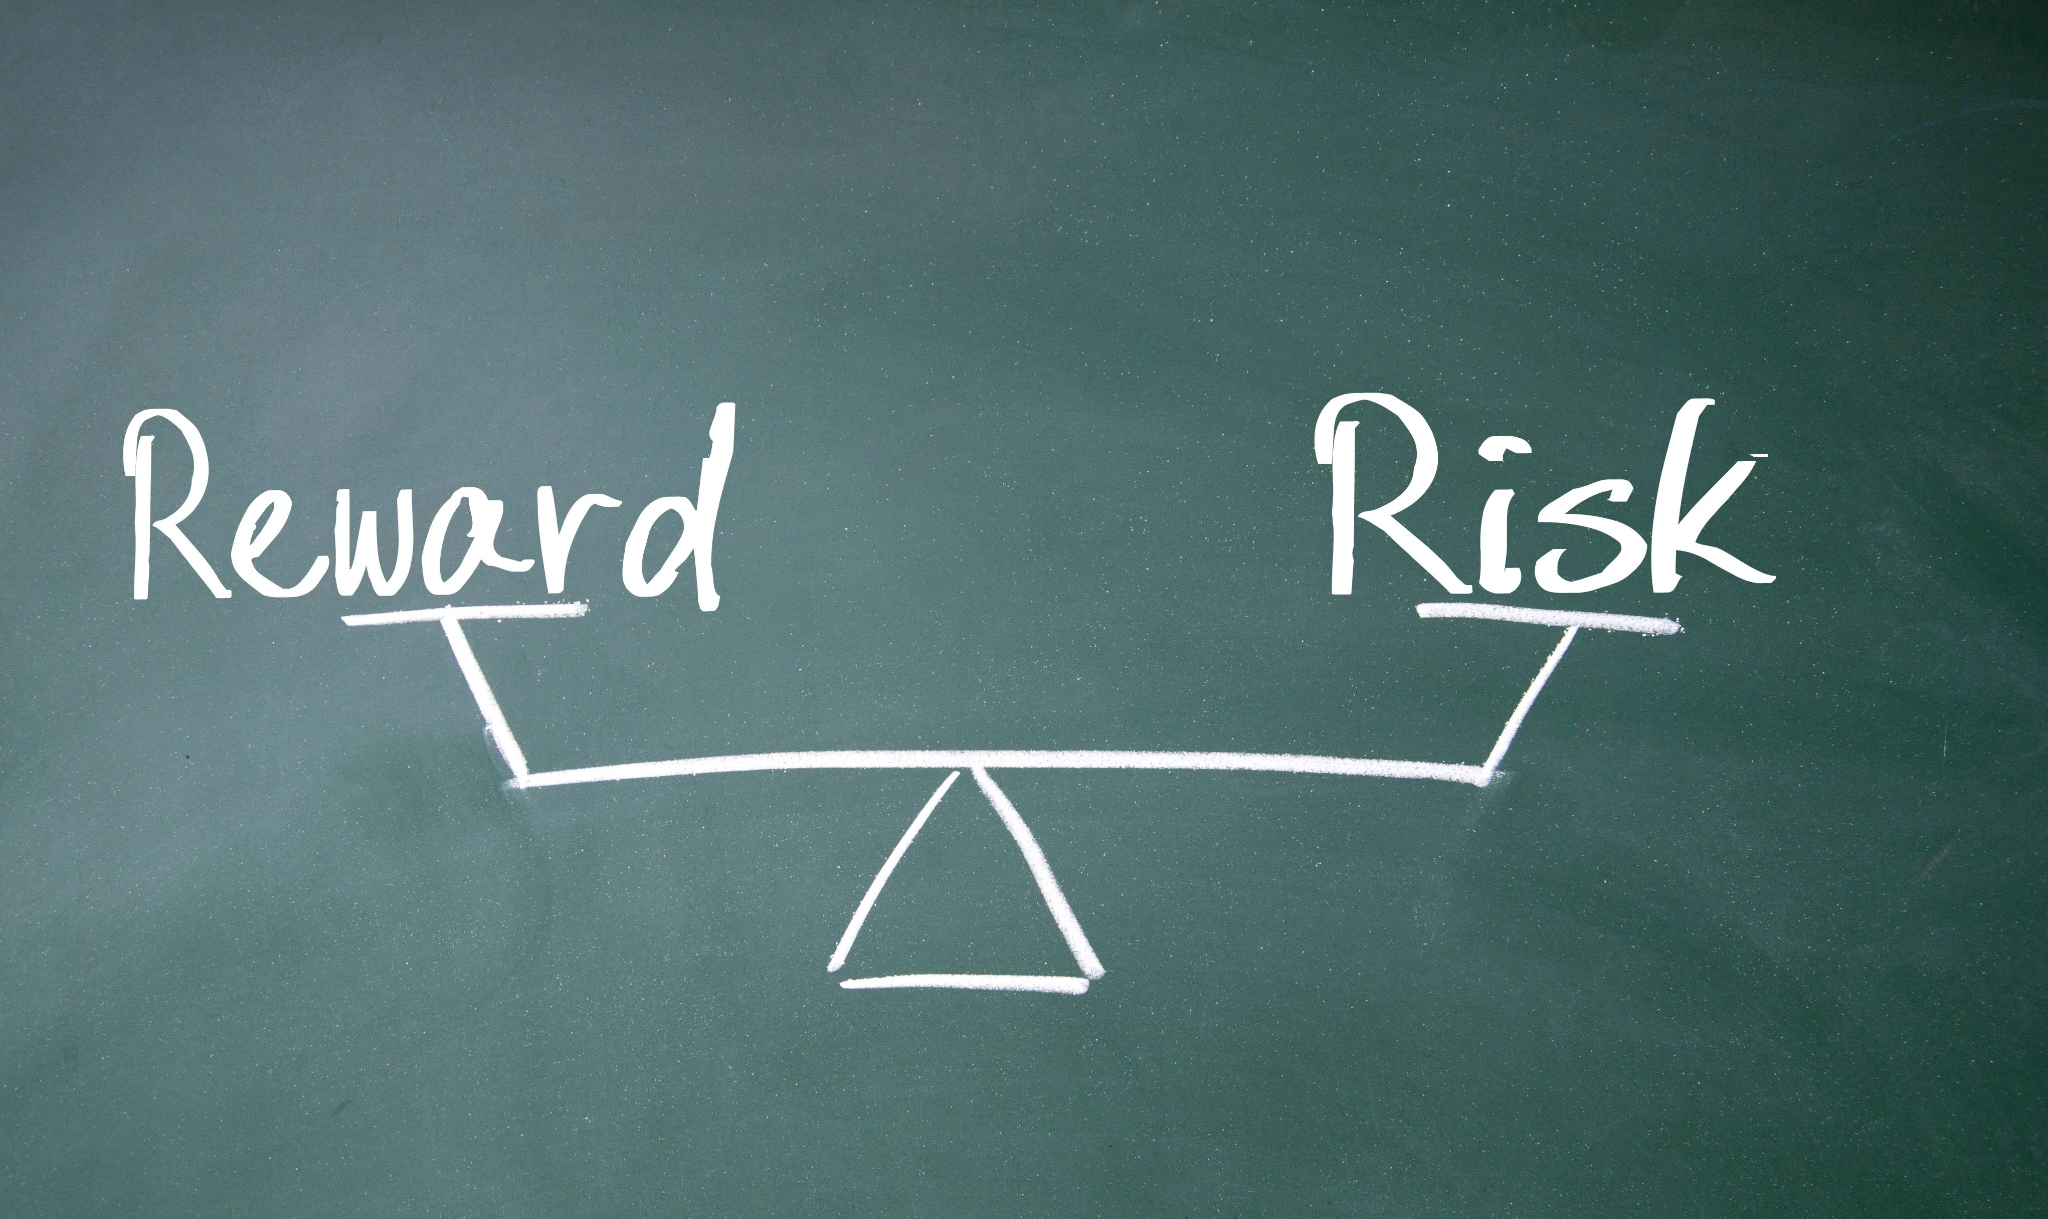 leadership training courses can be expensive, so make sure to balance risk and reward accordingly